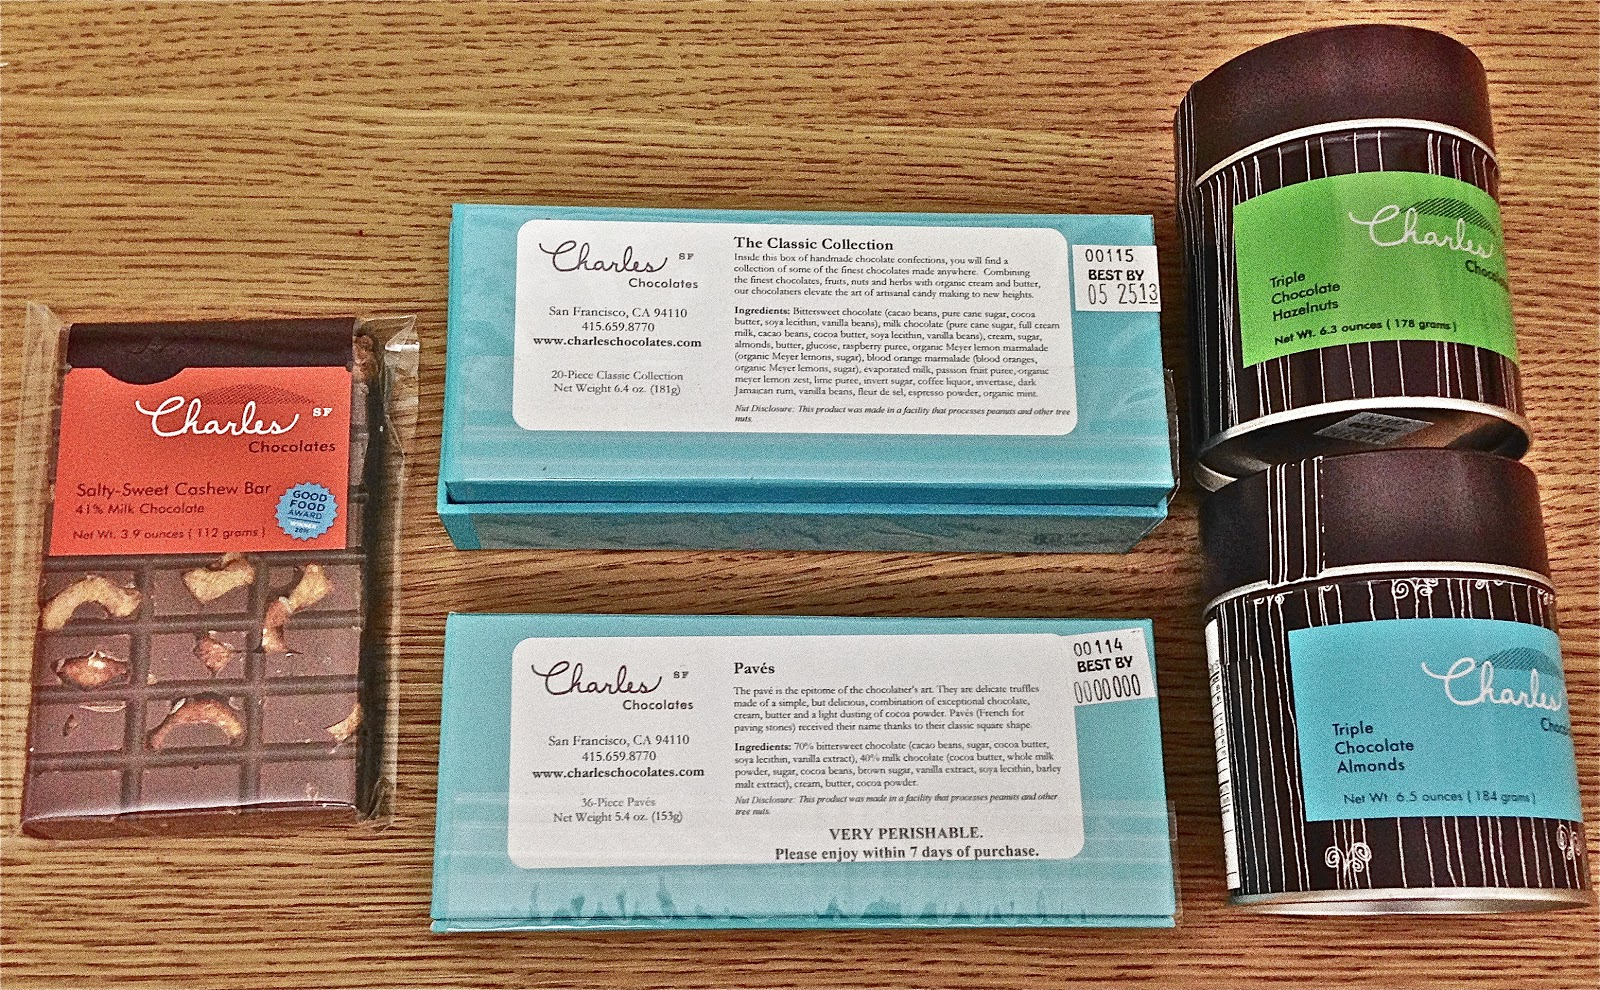 Tea Time Adventures and Other Food Exploits: Charles Chocolates in ...